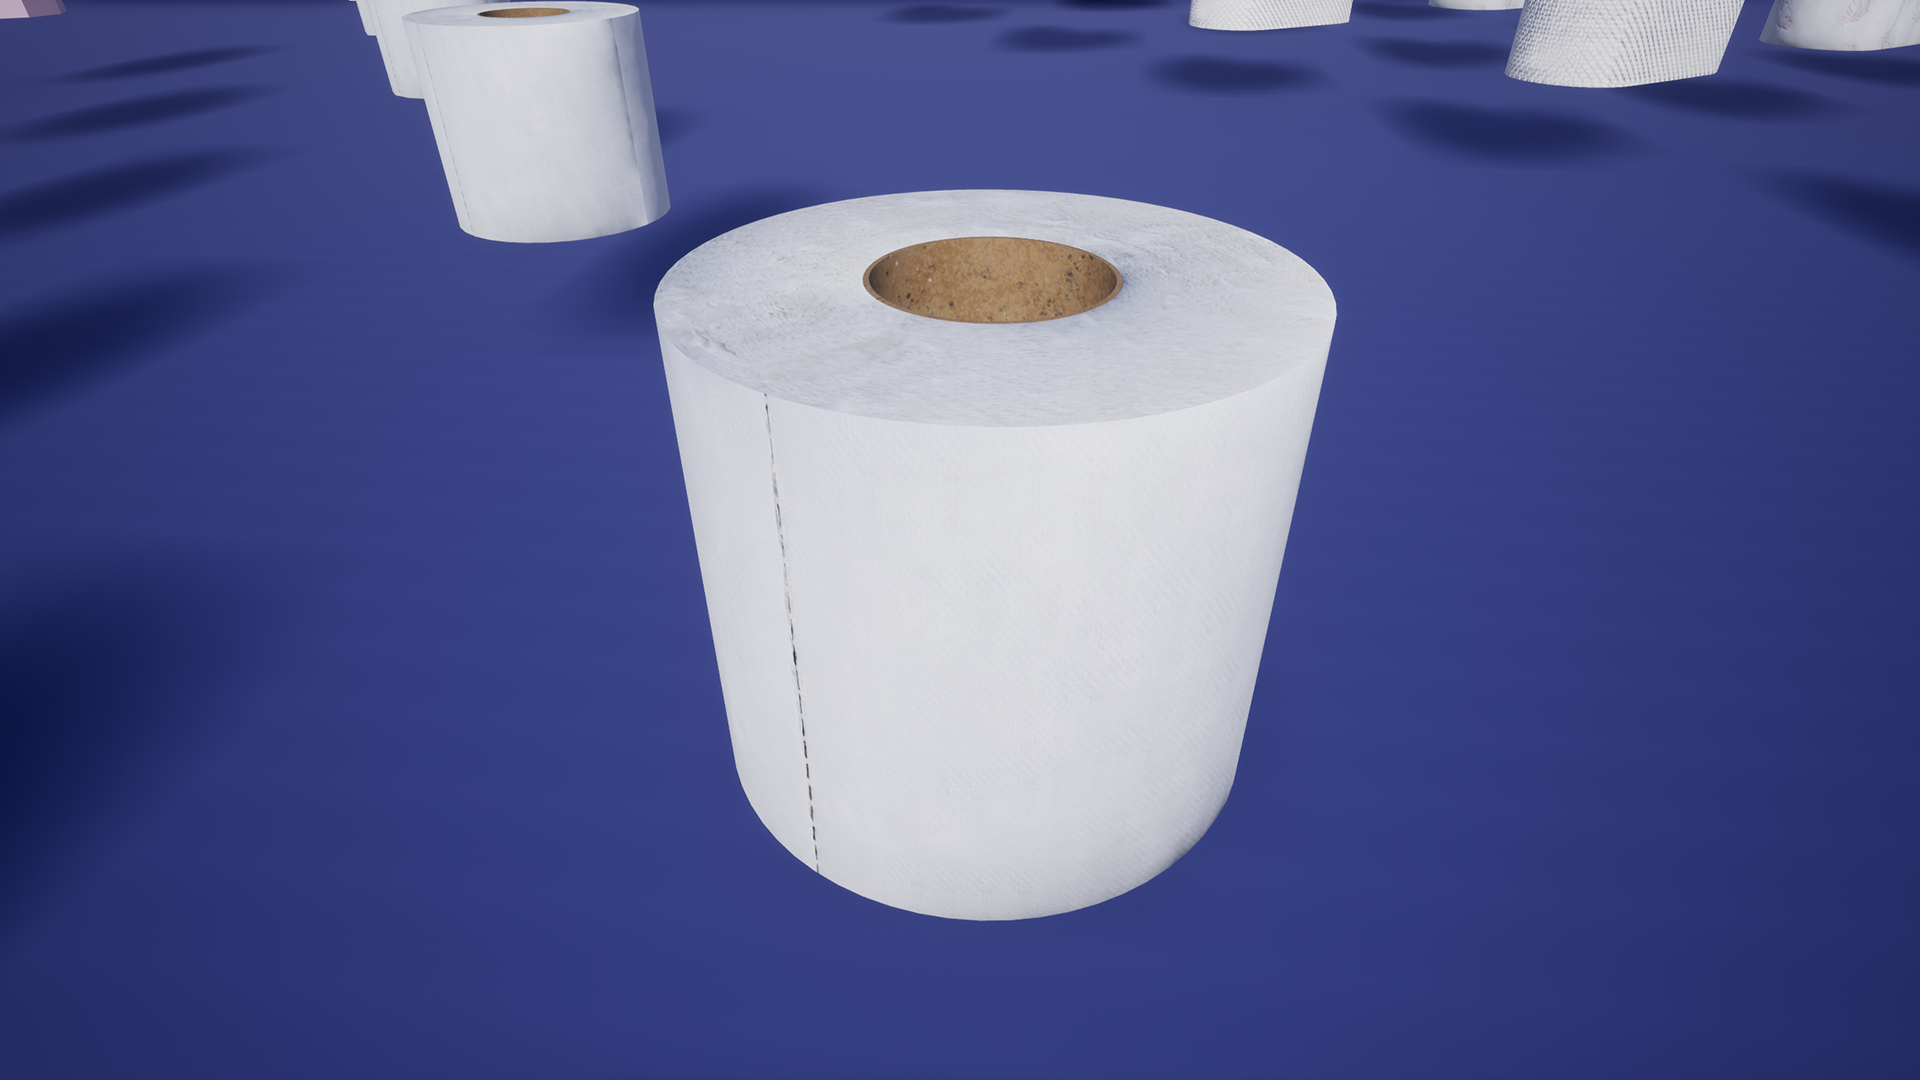 Hotgates Toilet Paper for COVID-19 003